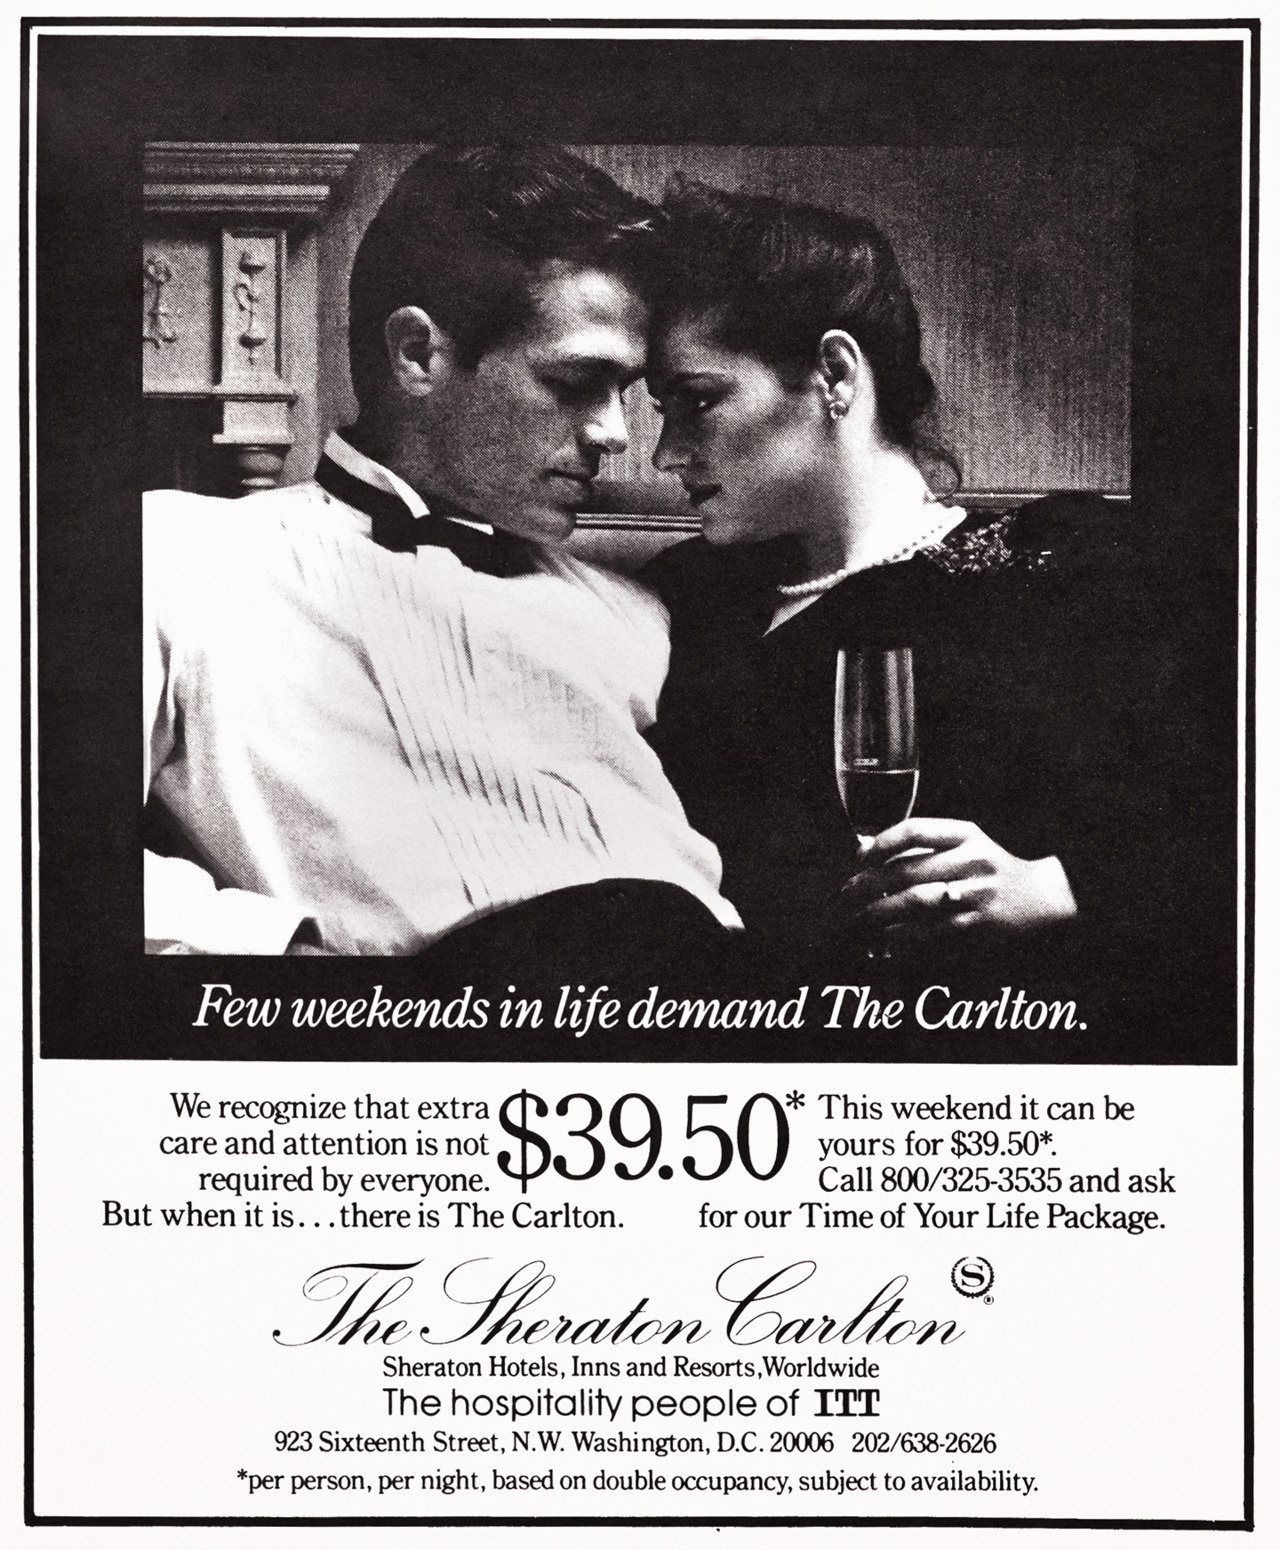 The Sheraton Carlton Advertisement - Gourmet: March 1985